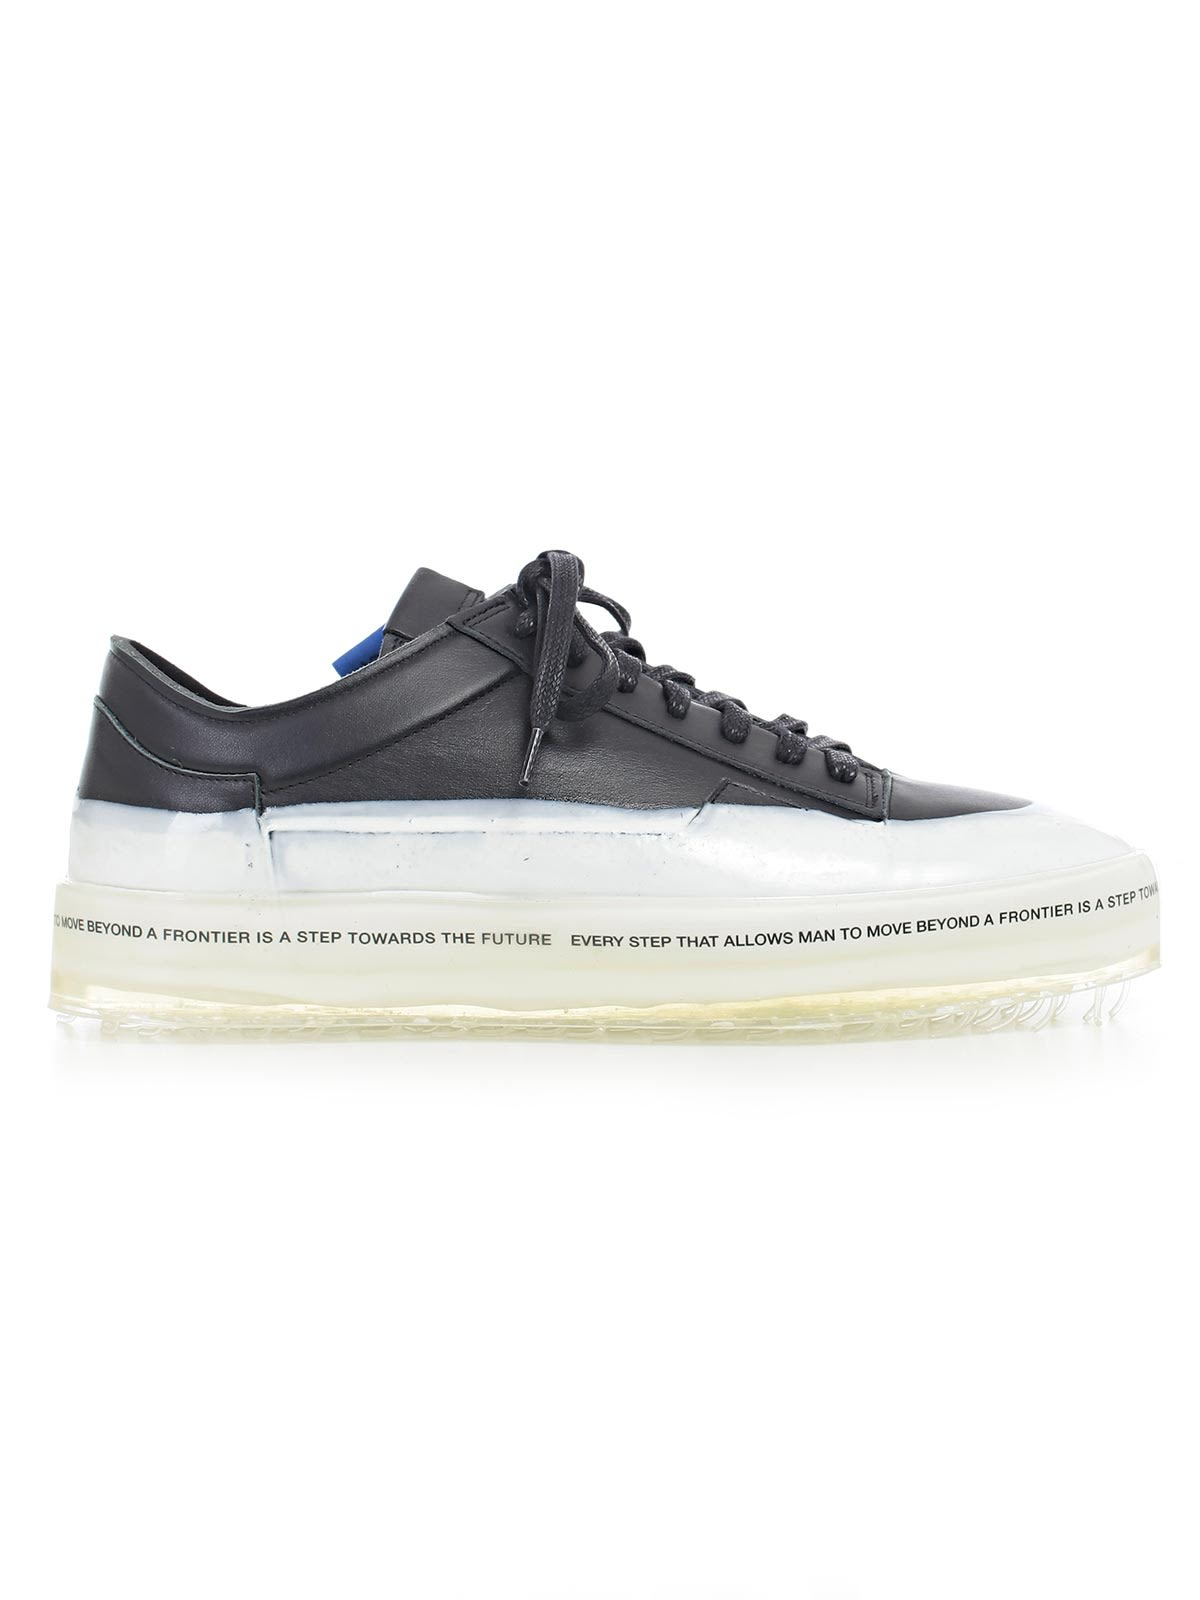 OXS RUBBER SOUL Oxs Rubber Soul Classic Sneakers in Black